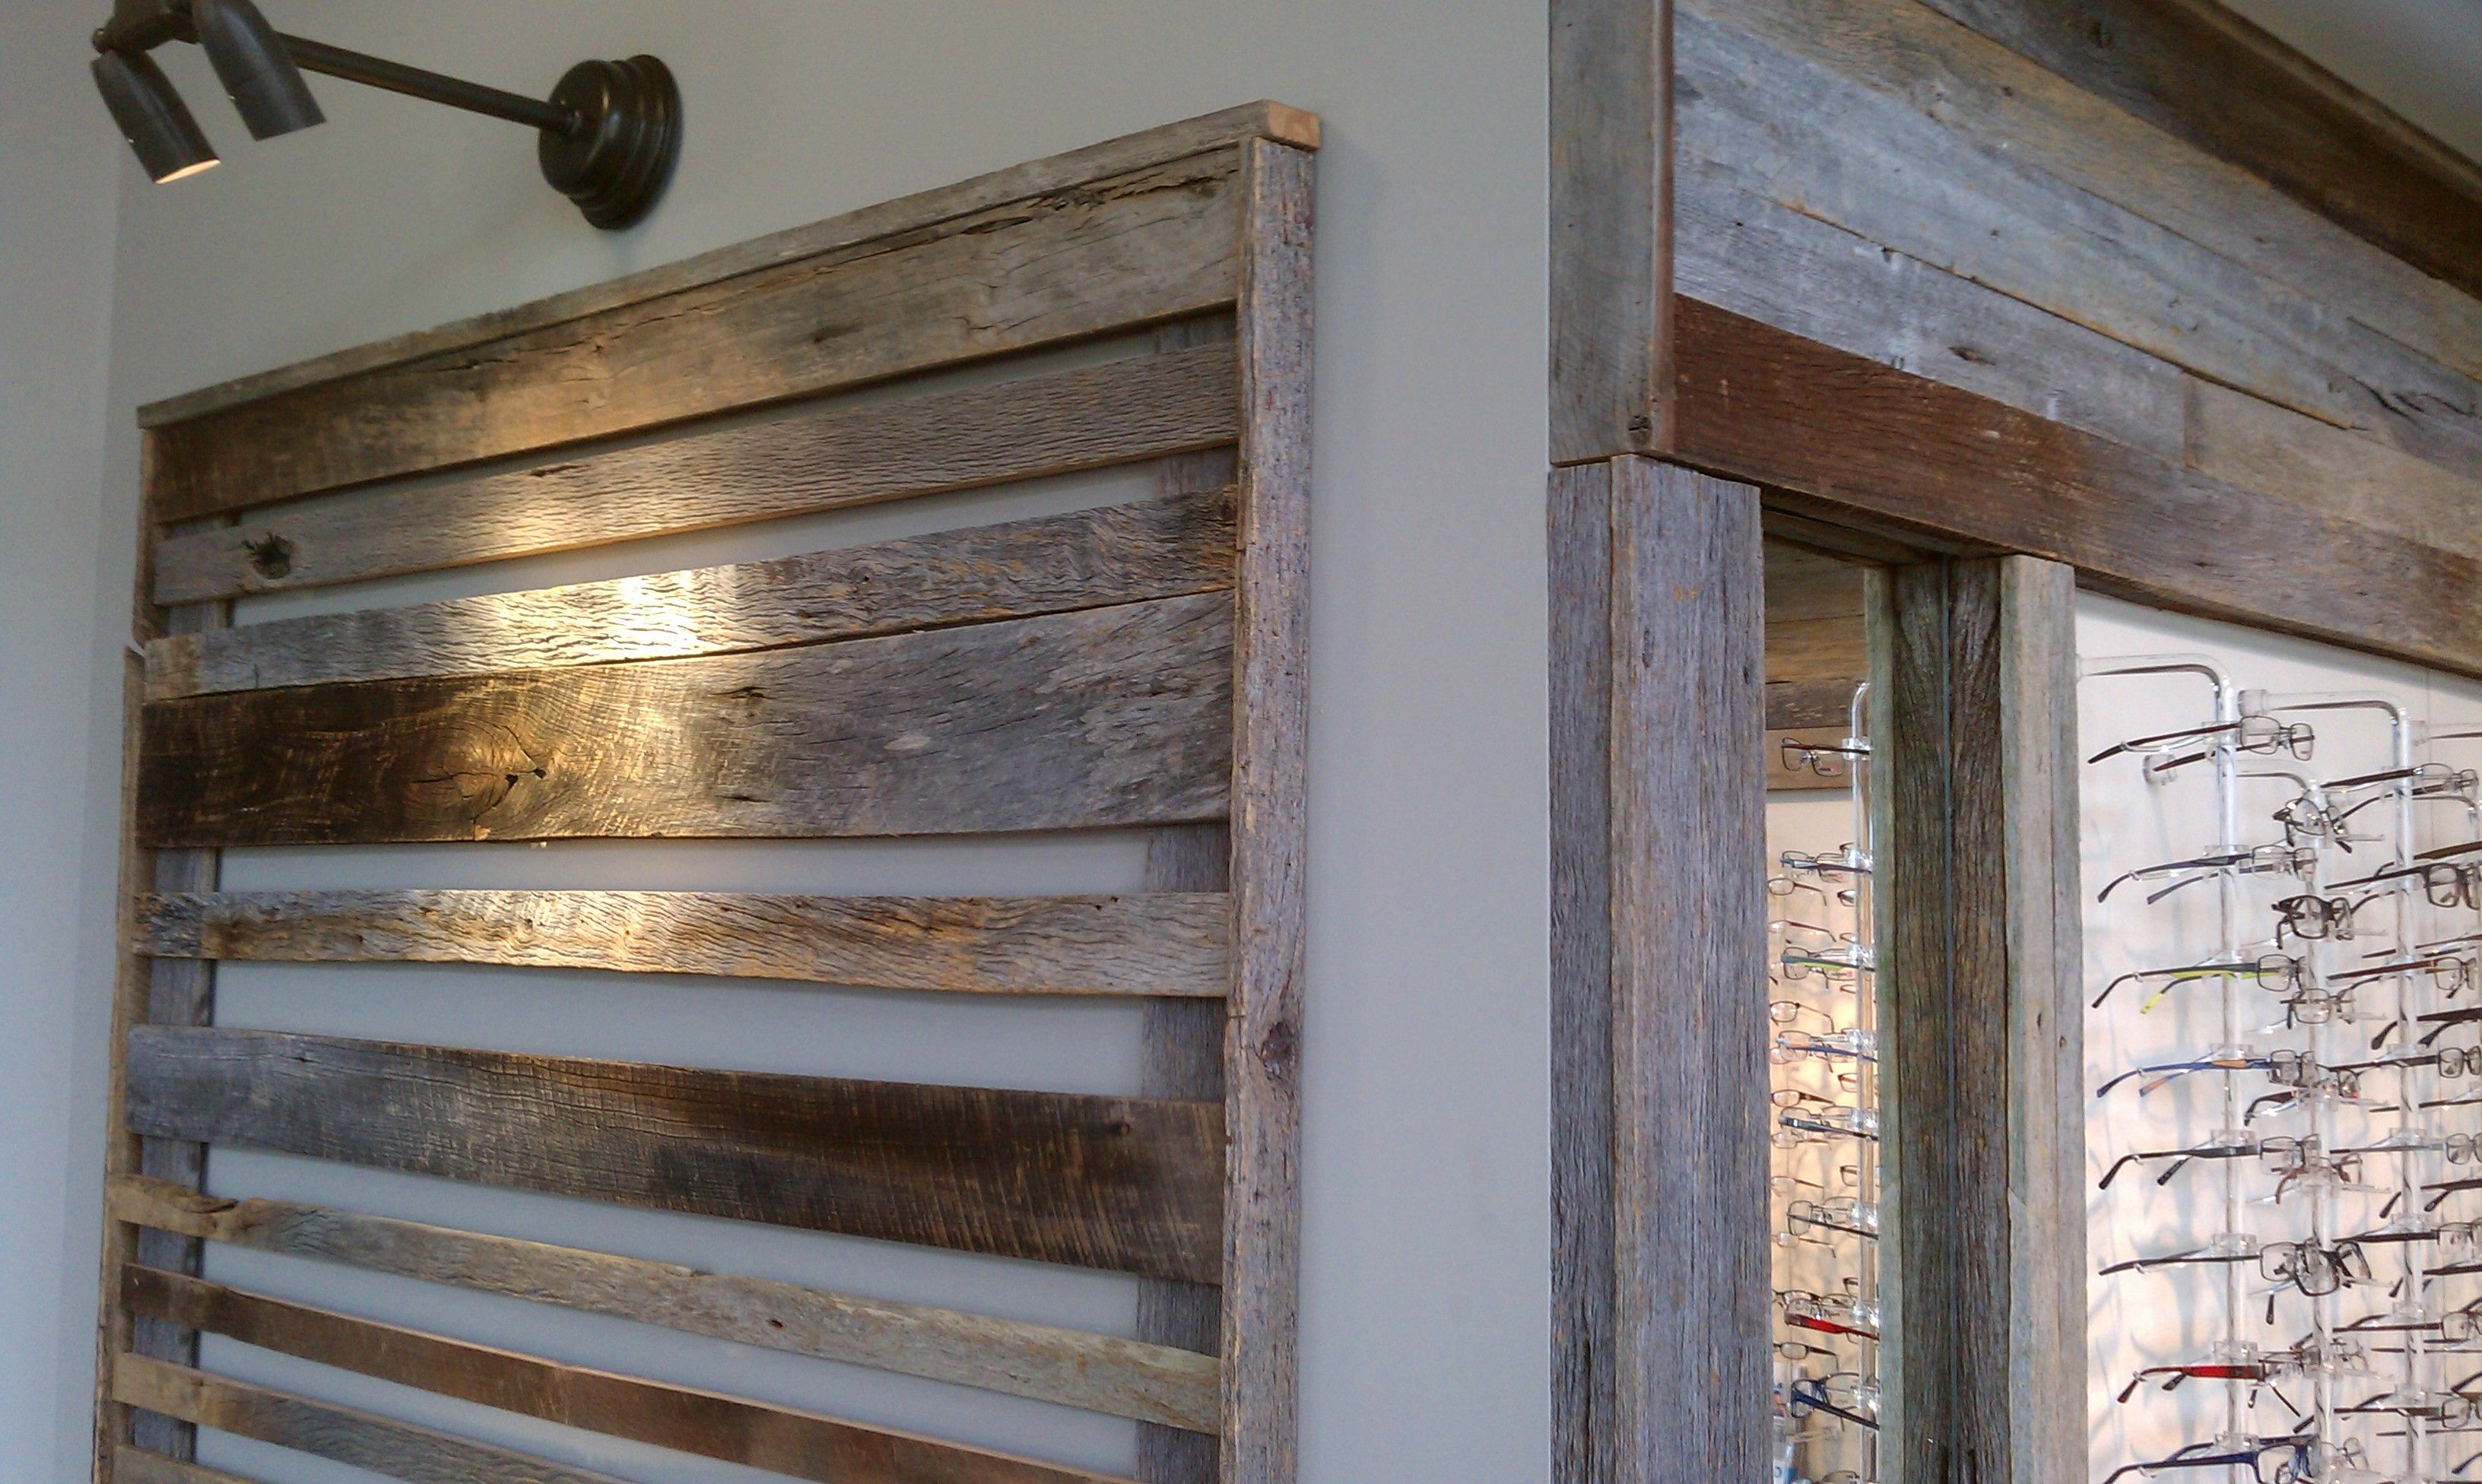 Barn Board Used For Optical Display At Stapleton Family